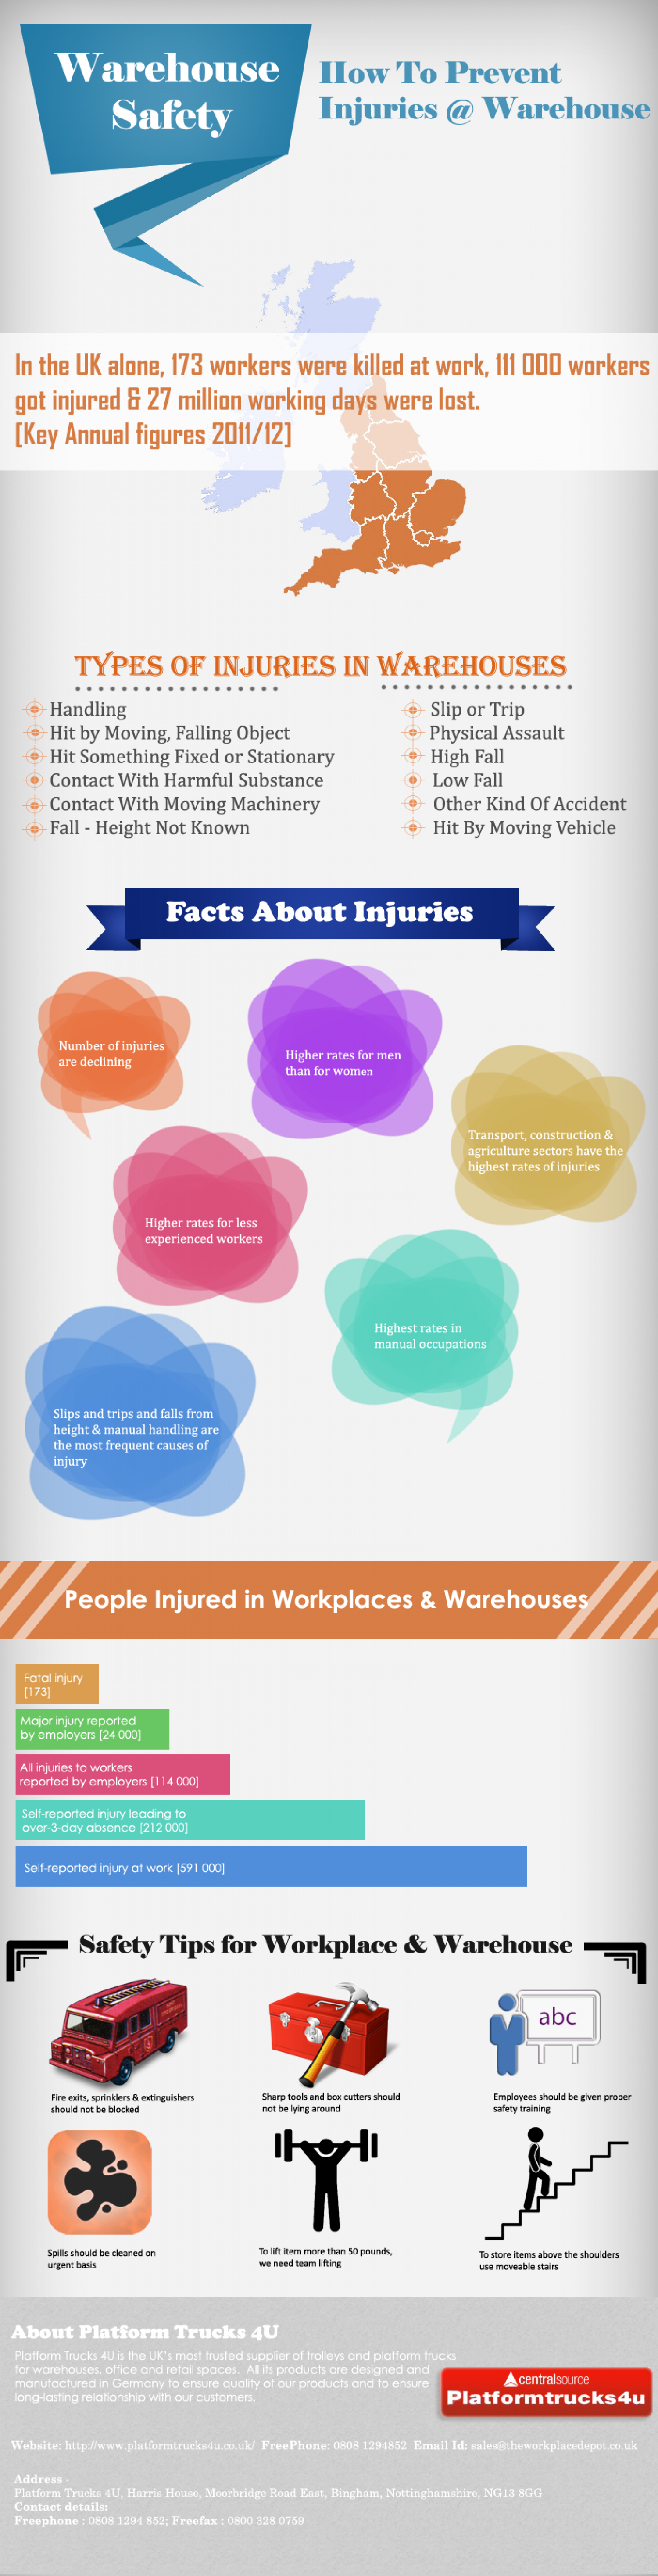 Preventing Injuries In Warehouses & In Workplaces  Infographic